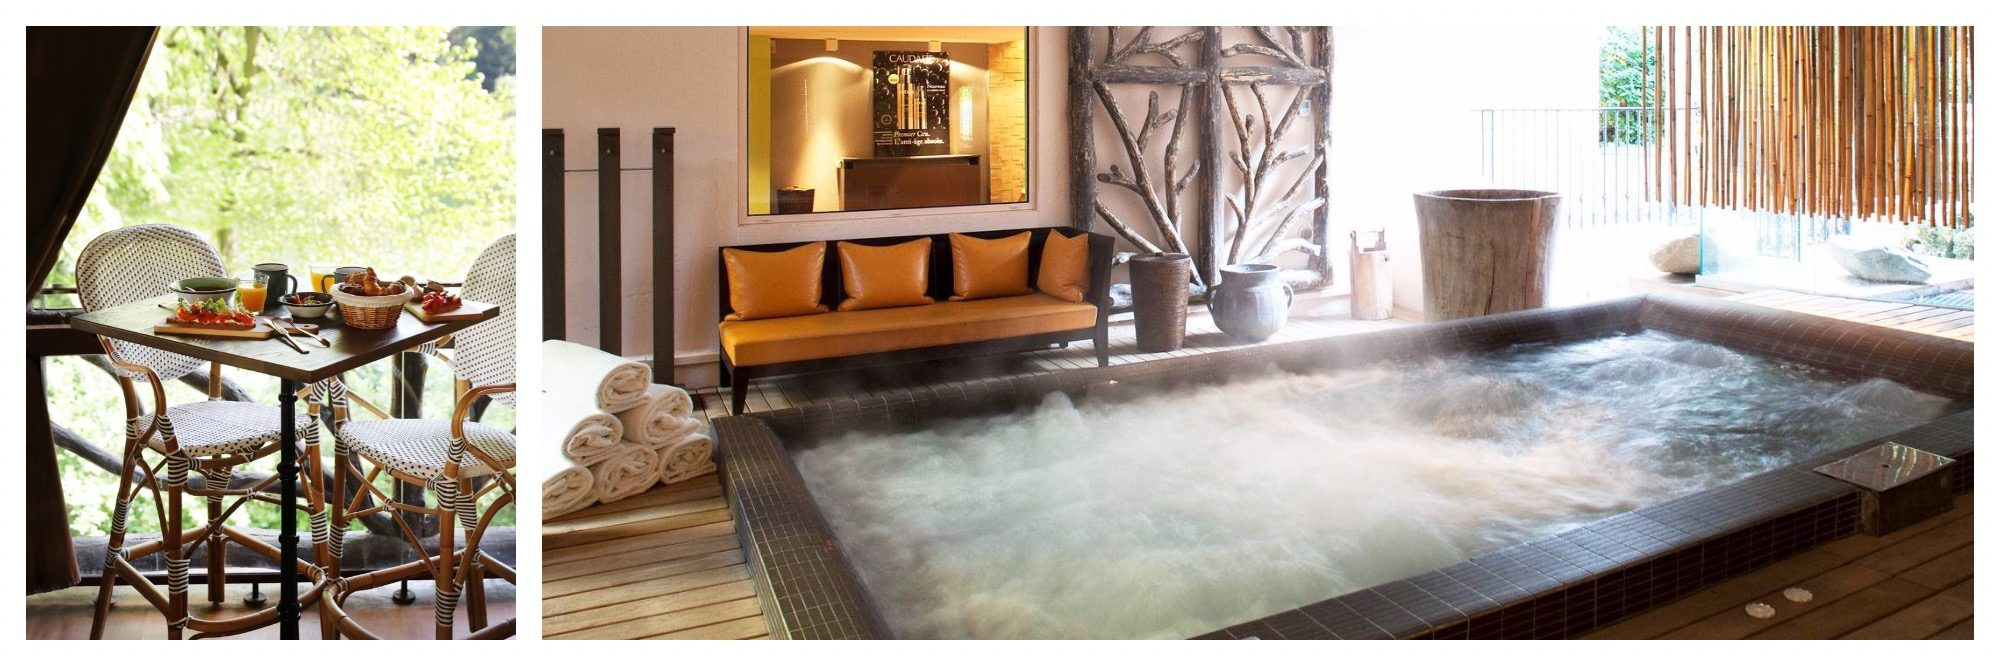 Les Etangs de Corot is popular for its Caudalie spa with a semi-outdoor jacuzzi.